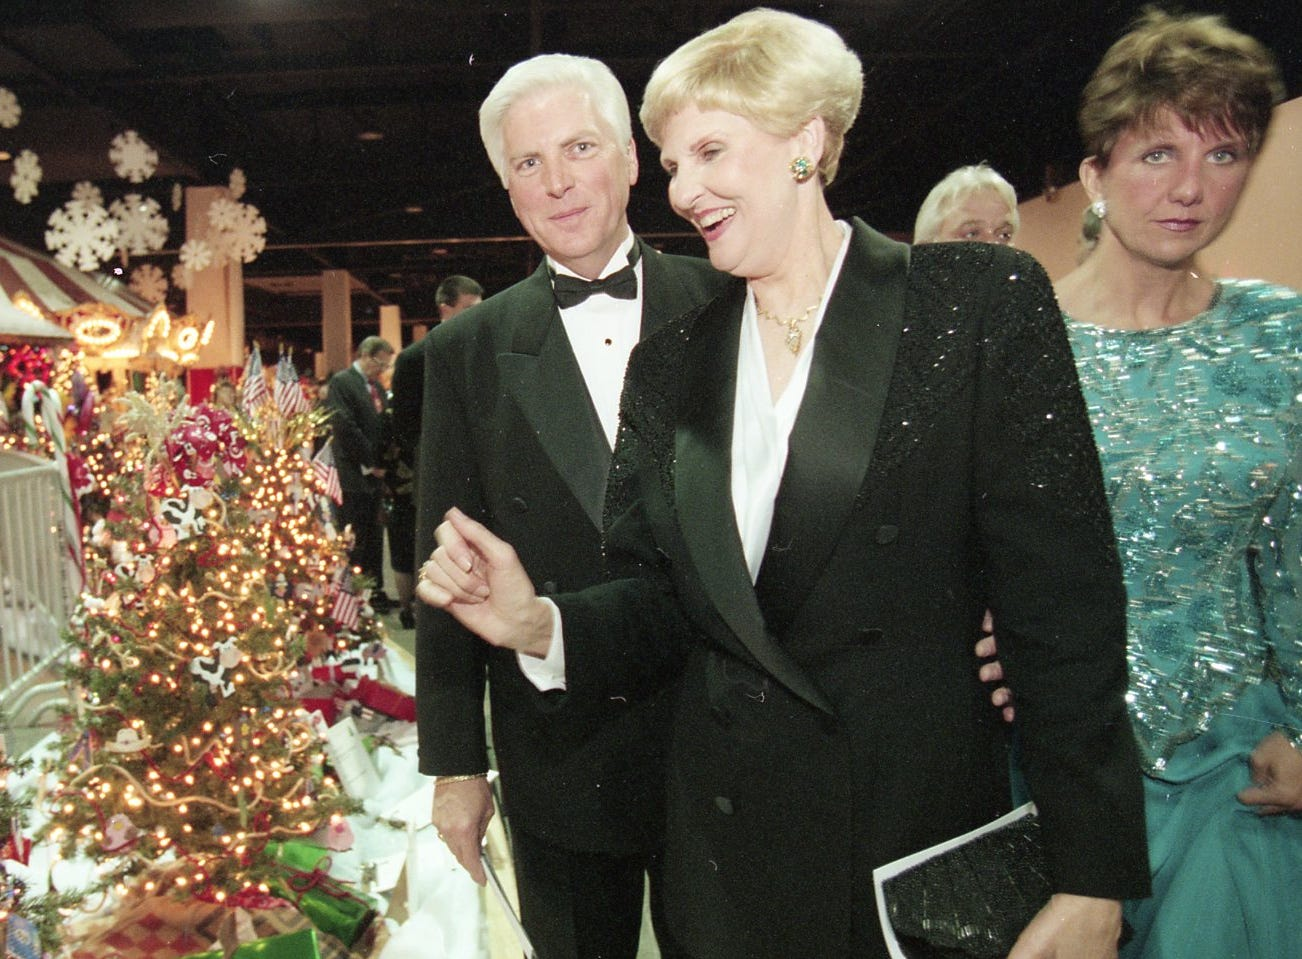 Art Mayfield of Gifts & Co. and Sally Rogers of All Knox Floral look at the decorated trees with an eye towards buying at Fantasy of Trees, 1996.